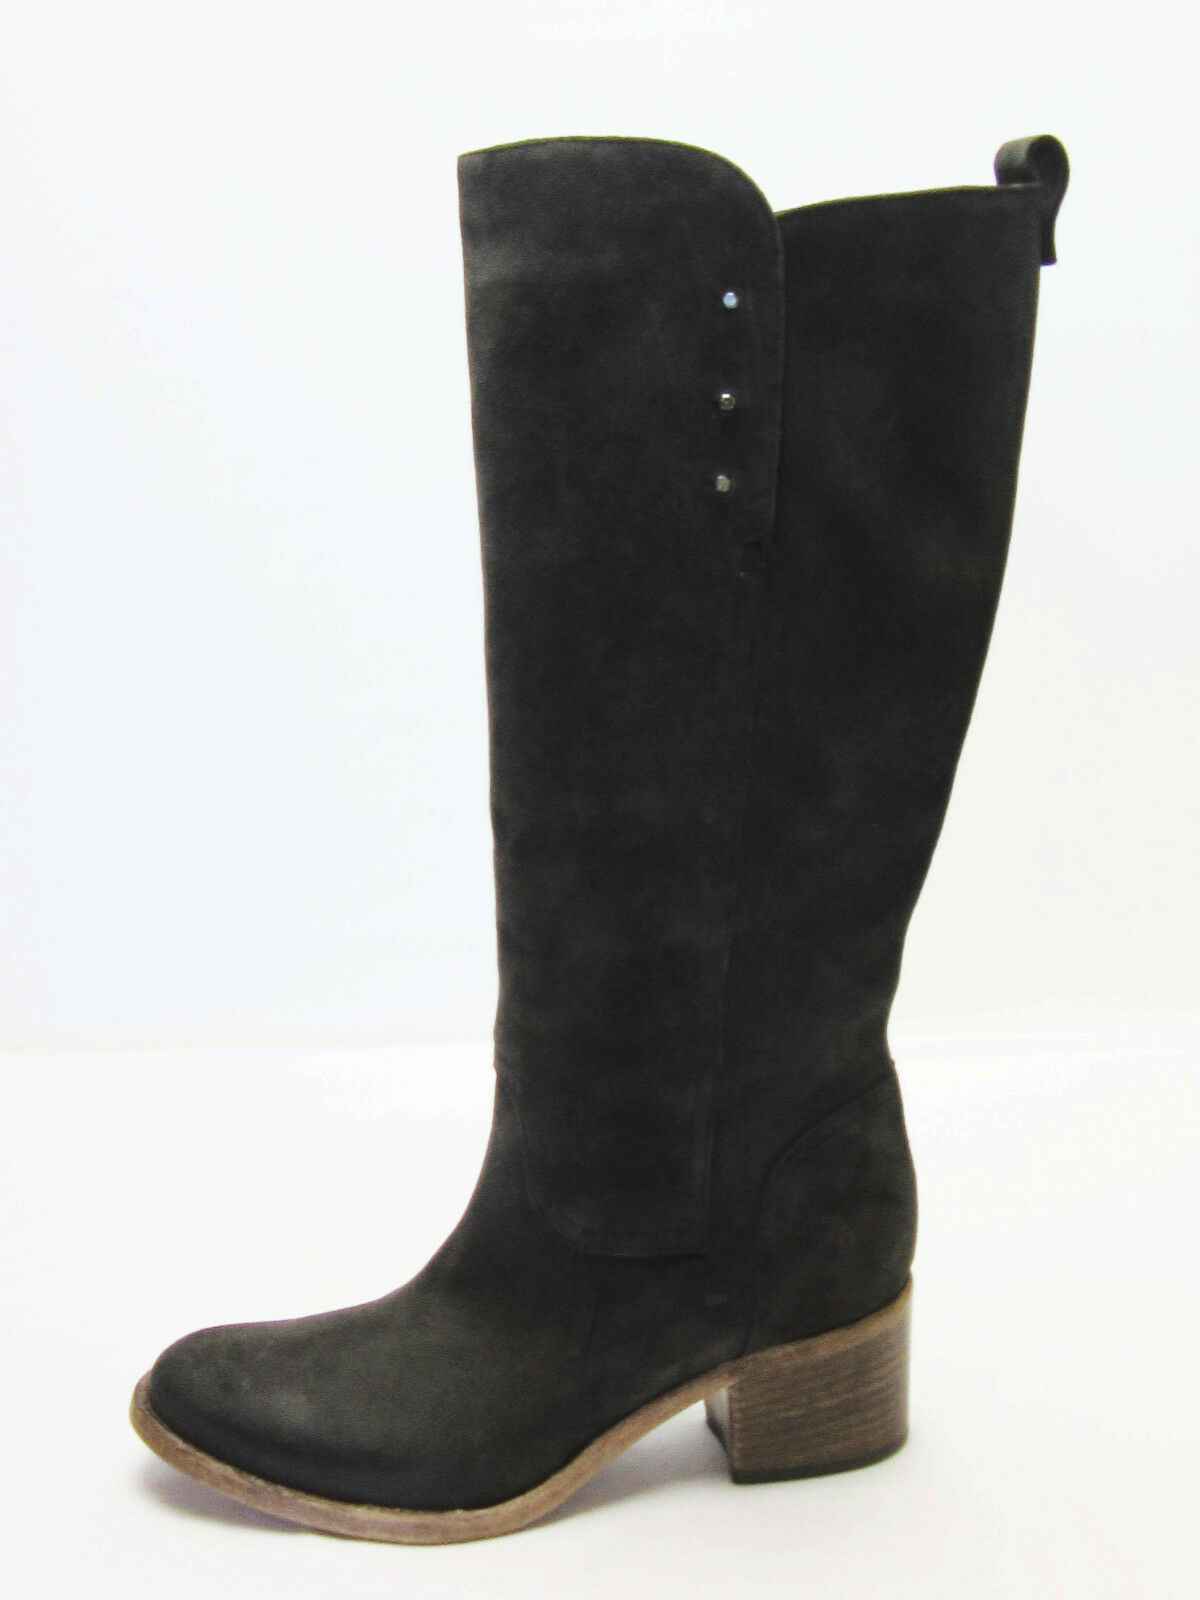 ALBERTO FERMANI Brown Suede Knee High Silver Stud Detail Boots Booties, Size 7.5